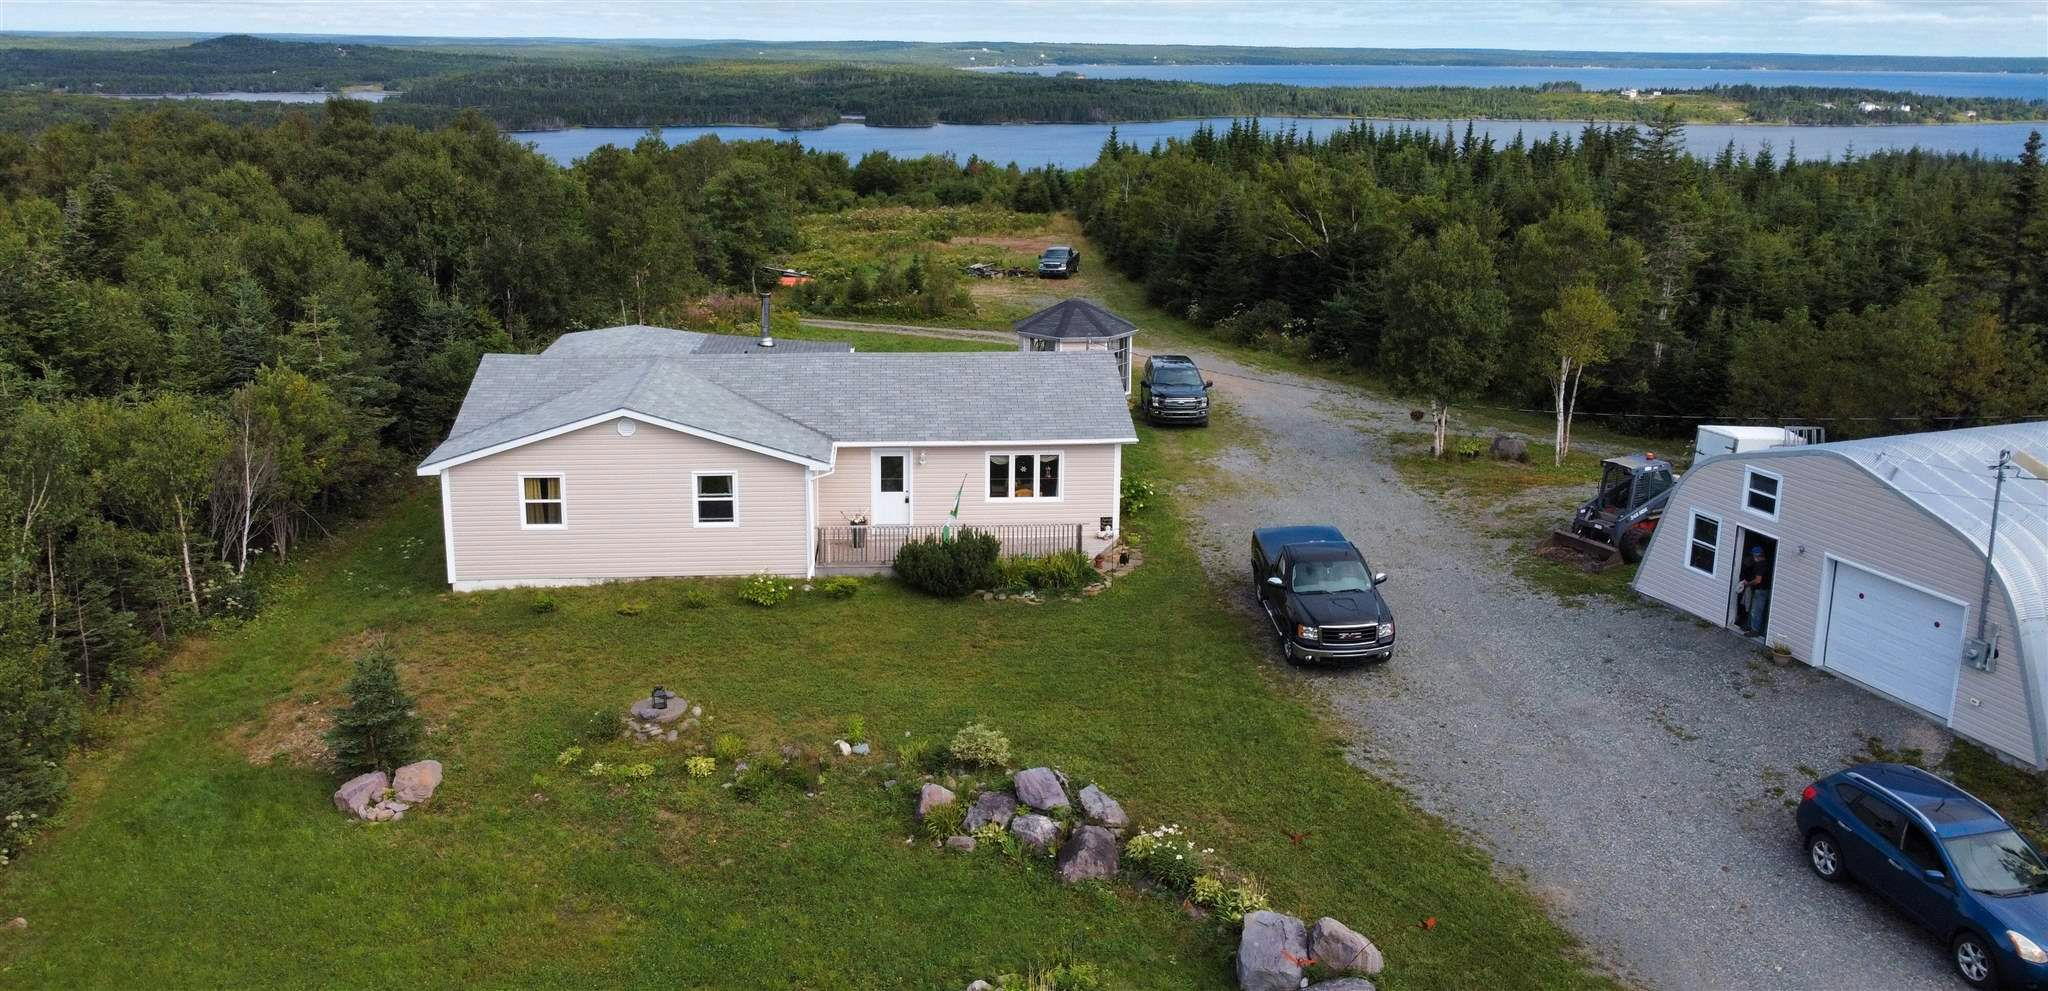 Main Photo: 701 Main A dieu Road in Catalone: 209-Victoria County / Baddeck Residential for sale (Cape Breton)  : MLS®# 202118490